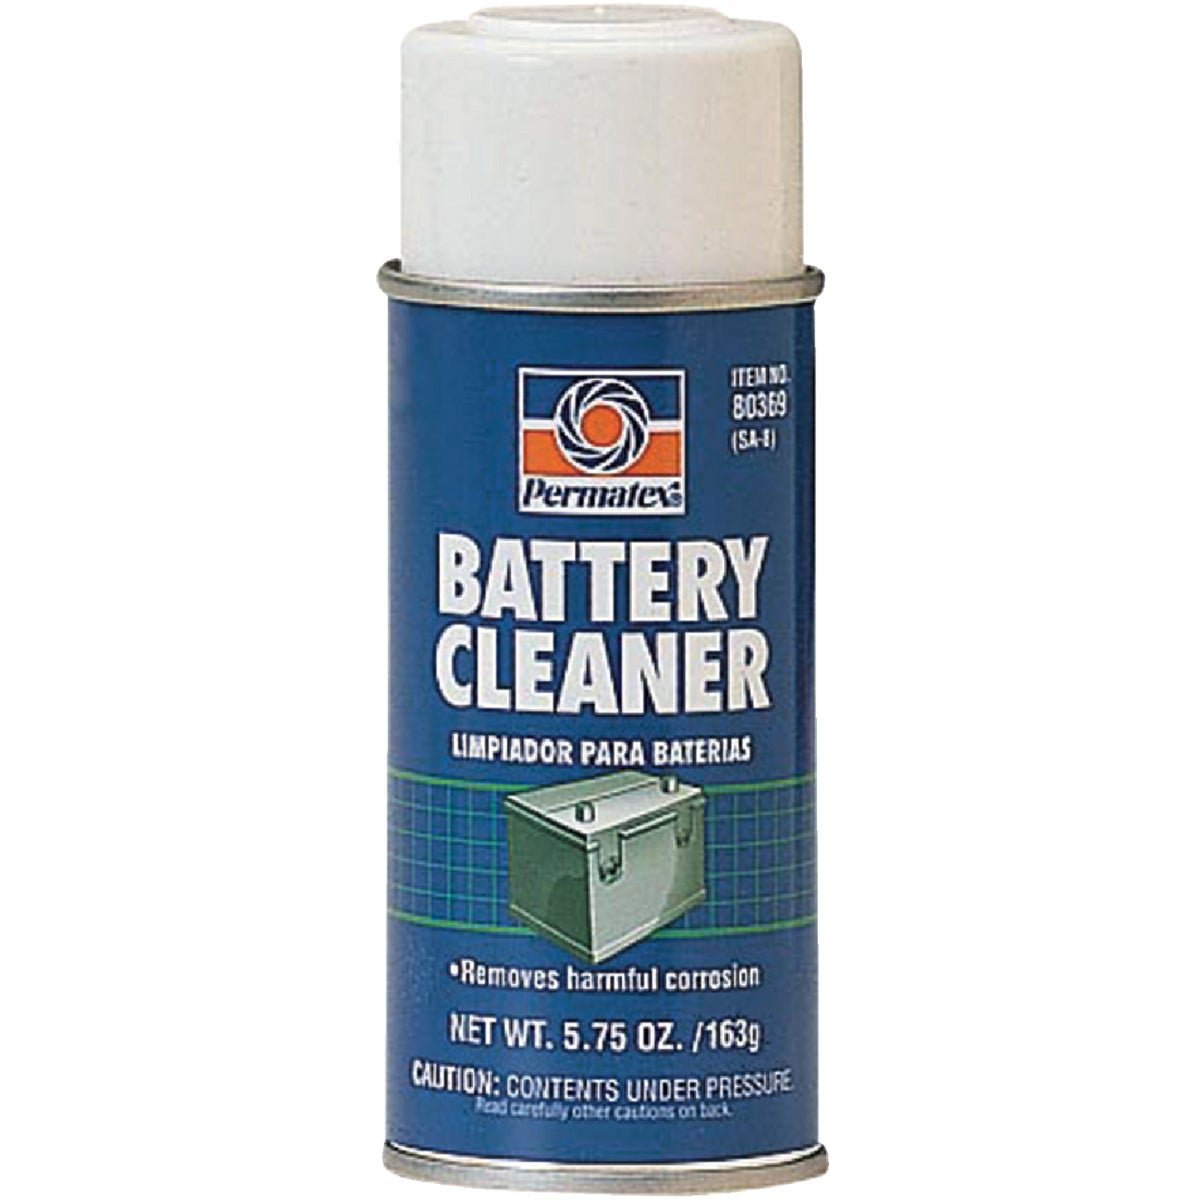 Battery Cleaner, 80369